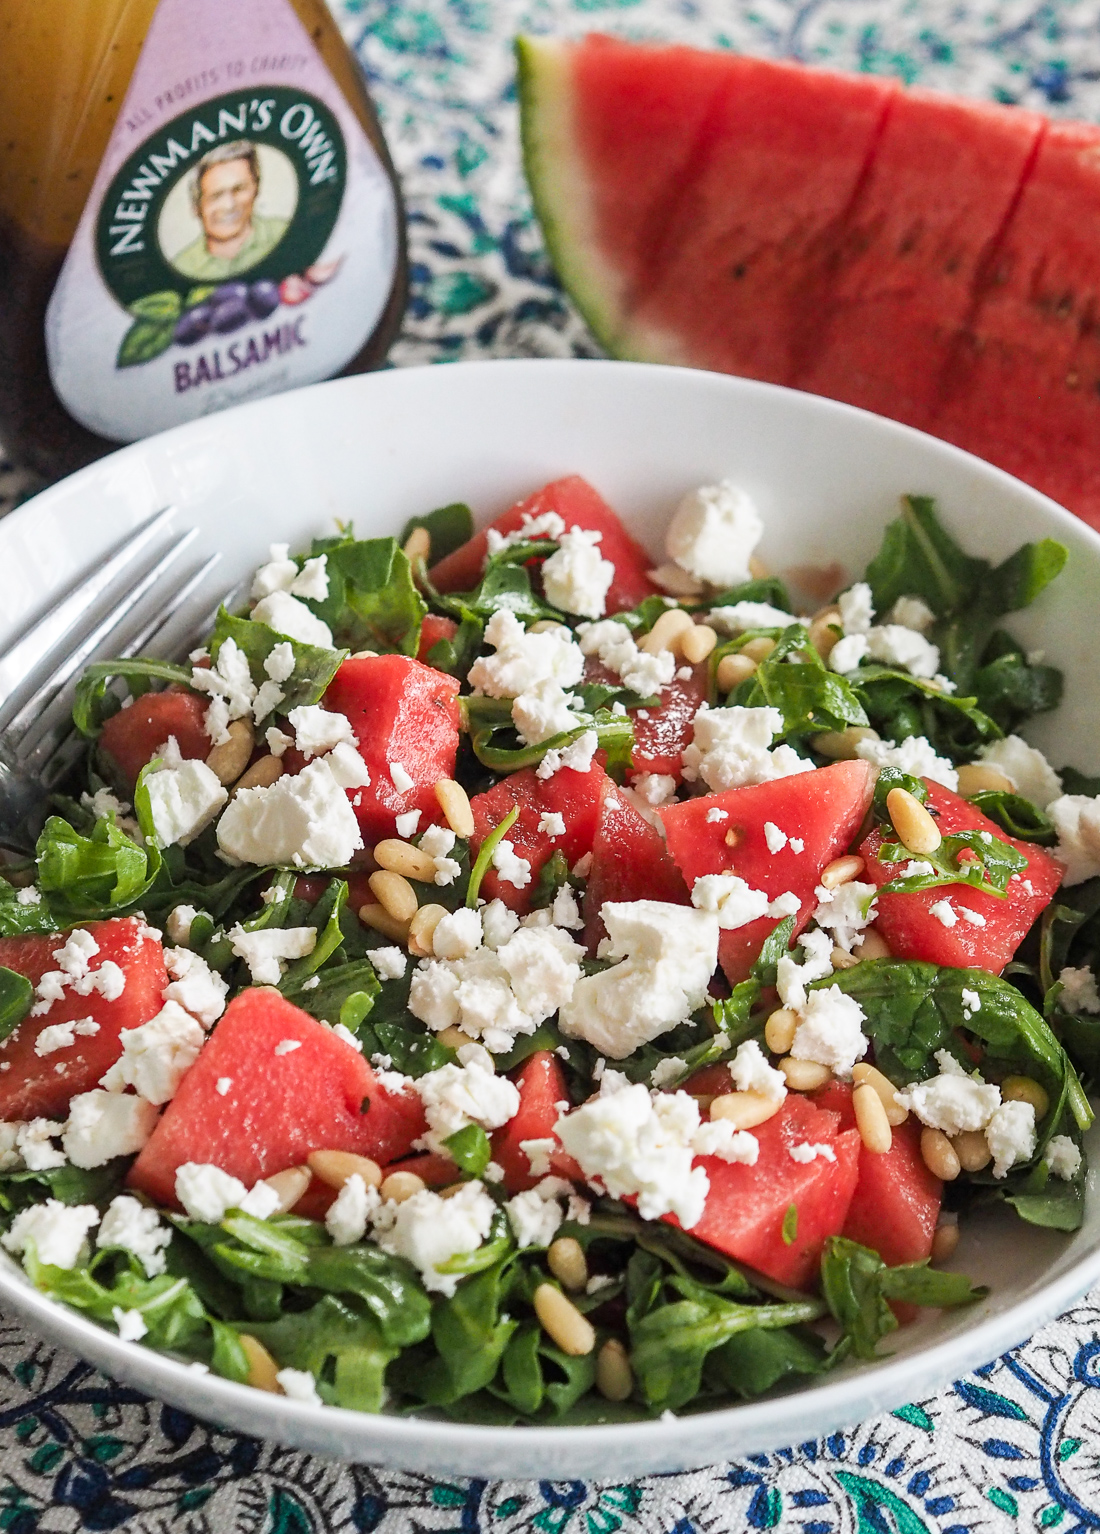 Watermelon Rocket And Feta Salad With Balsamic Dressing